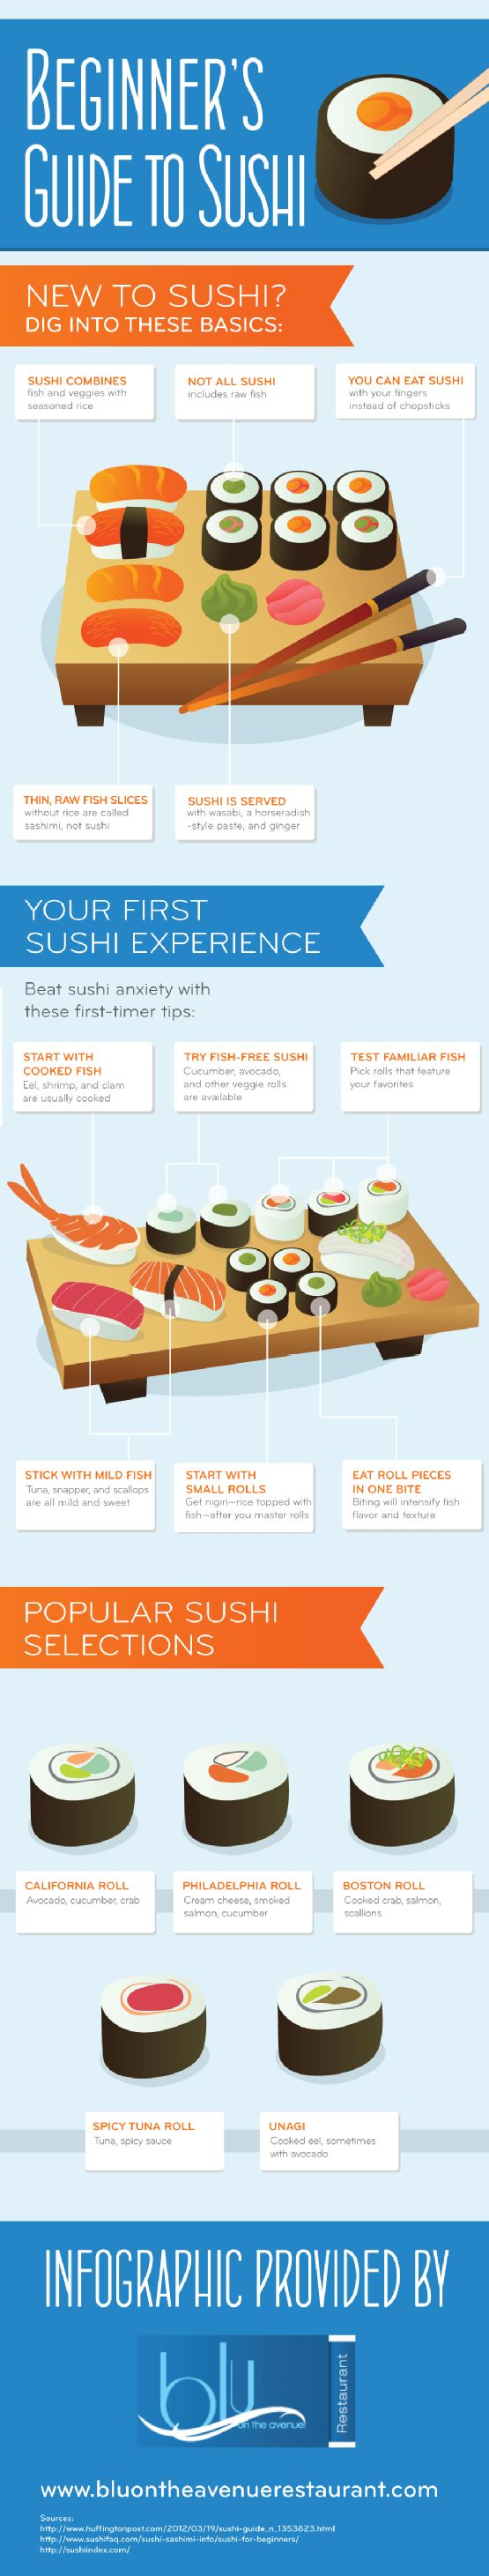 The Beginner's Guide to Sushi [infographic] - Daily Infographic